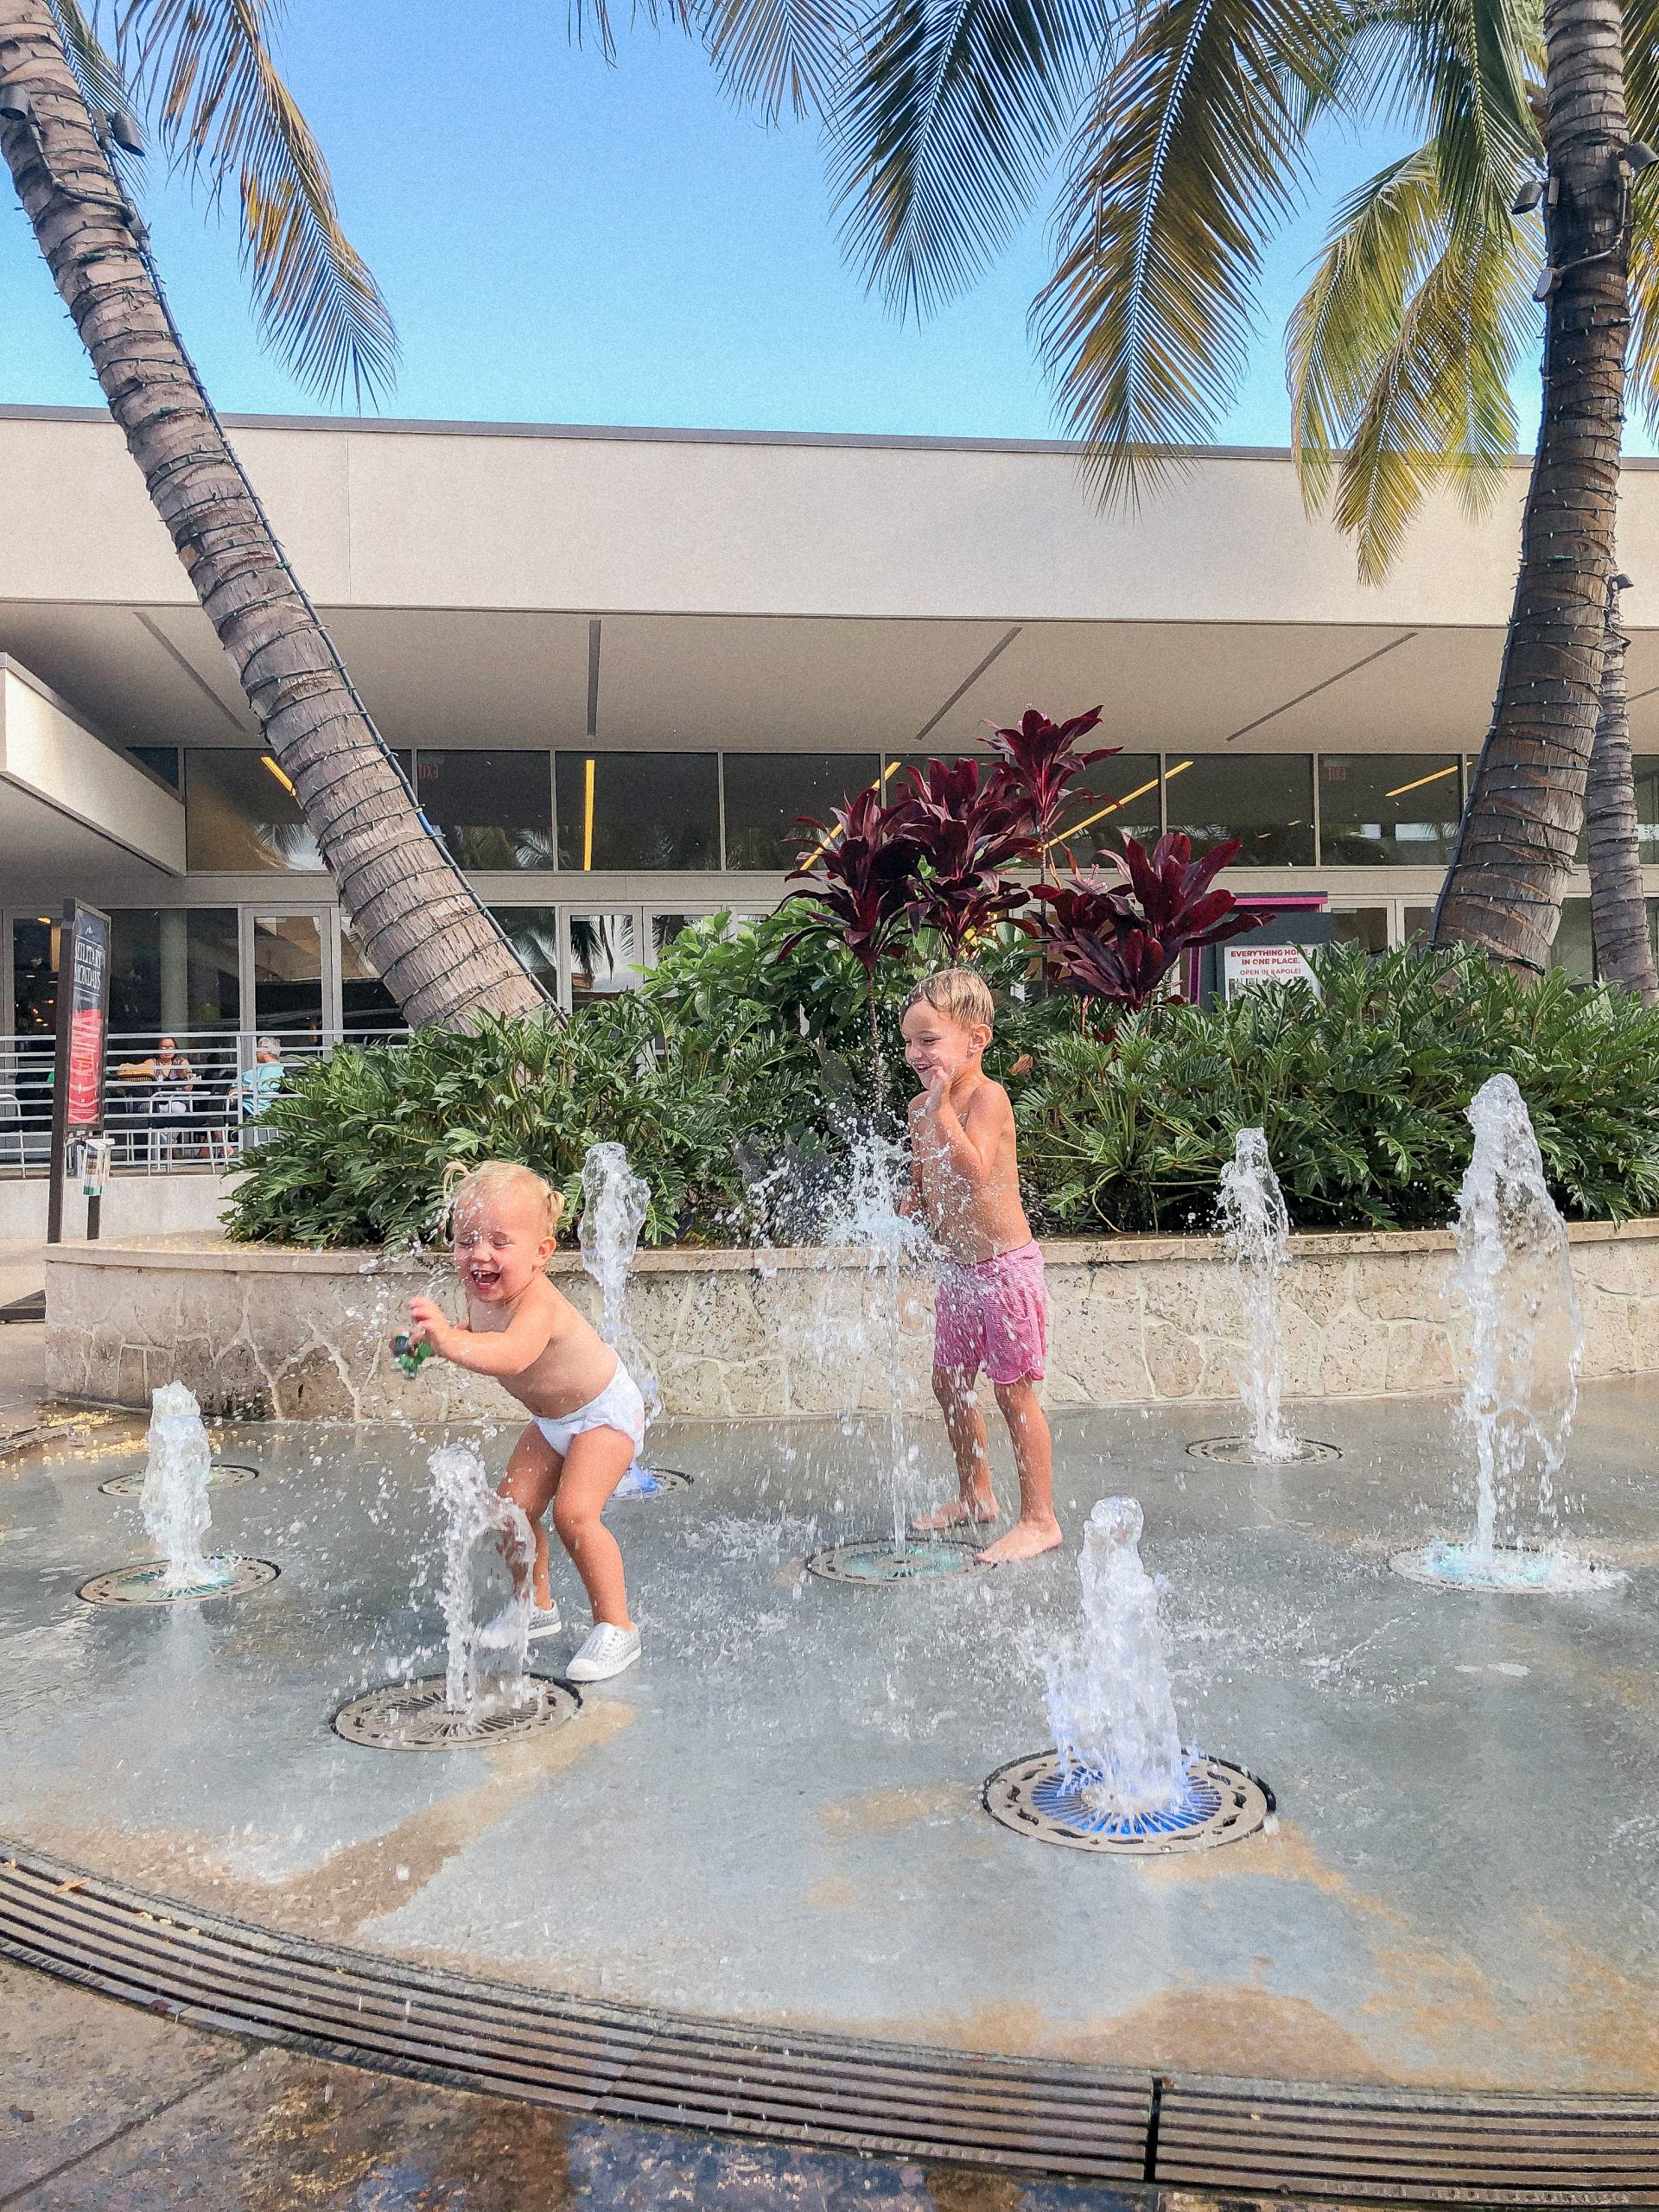 Ka Makana Ali'i splash pad - splash pad on Oahu - splash pad honolulu - splash pad hawaii - military family Hawaii - kid friendly activities in Hawaii - kid activities on Oahu - kid activities in Honolulu - toddler friendly Hawaii - Things for toddlers to do in Hawaii